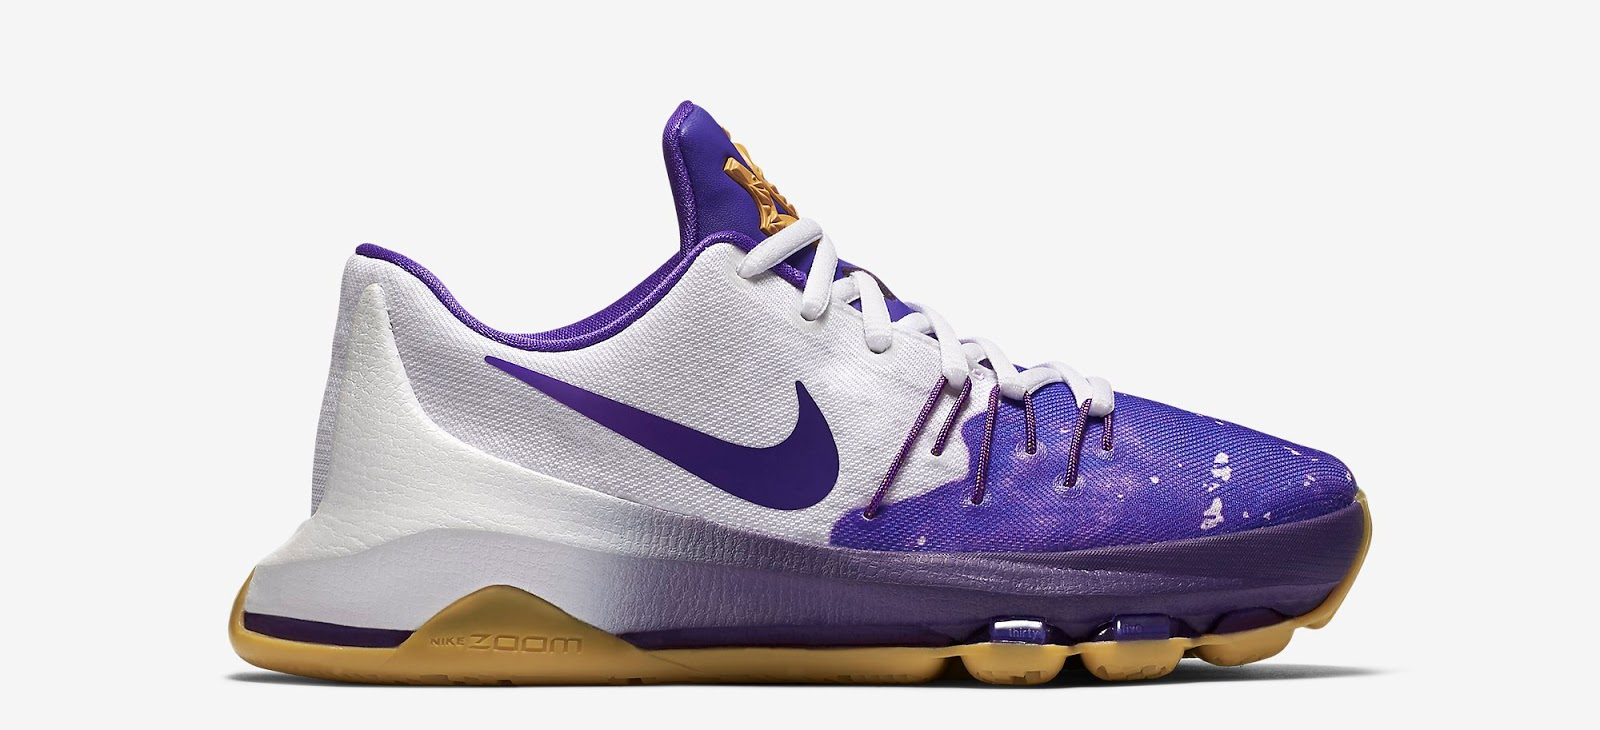 ... nike kd 8 gs peanut butter jelly white fuschia flash mulberry hyper  grape release reminder